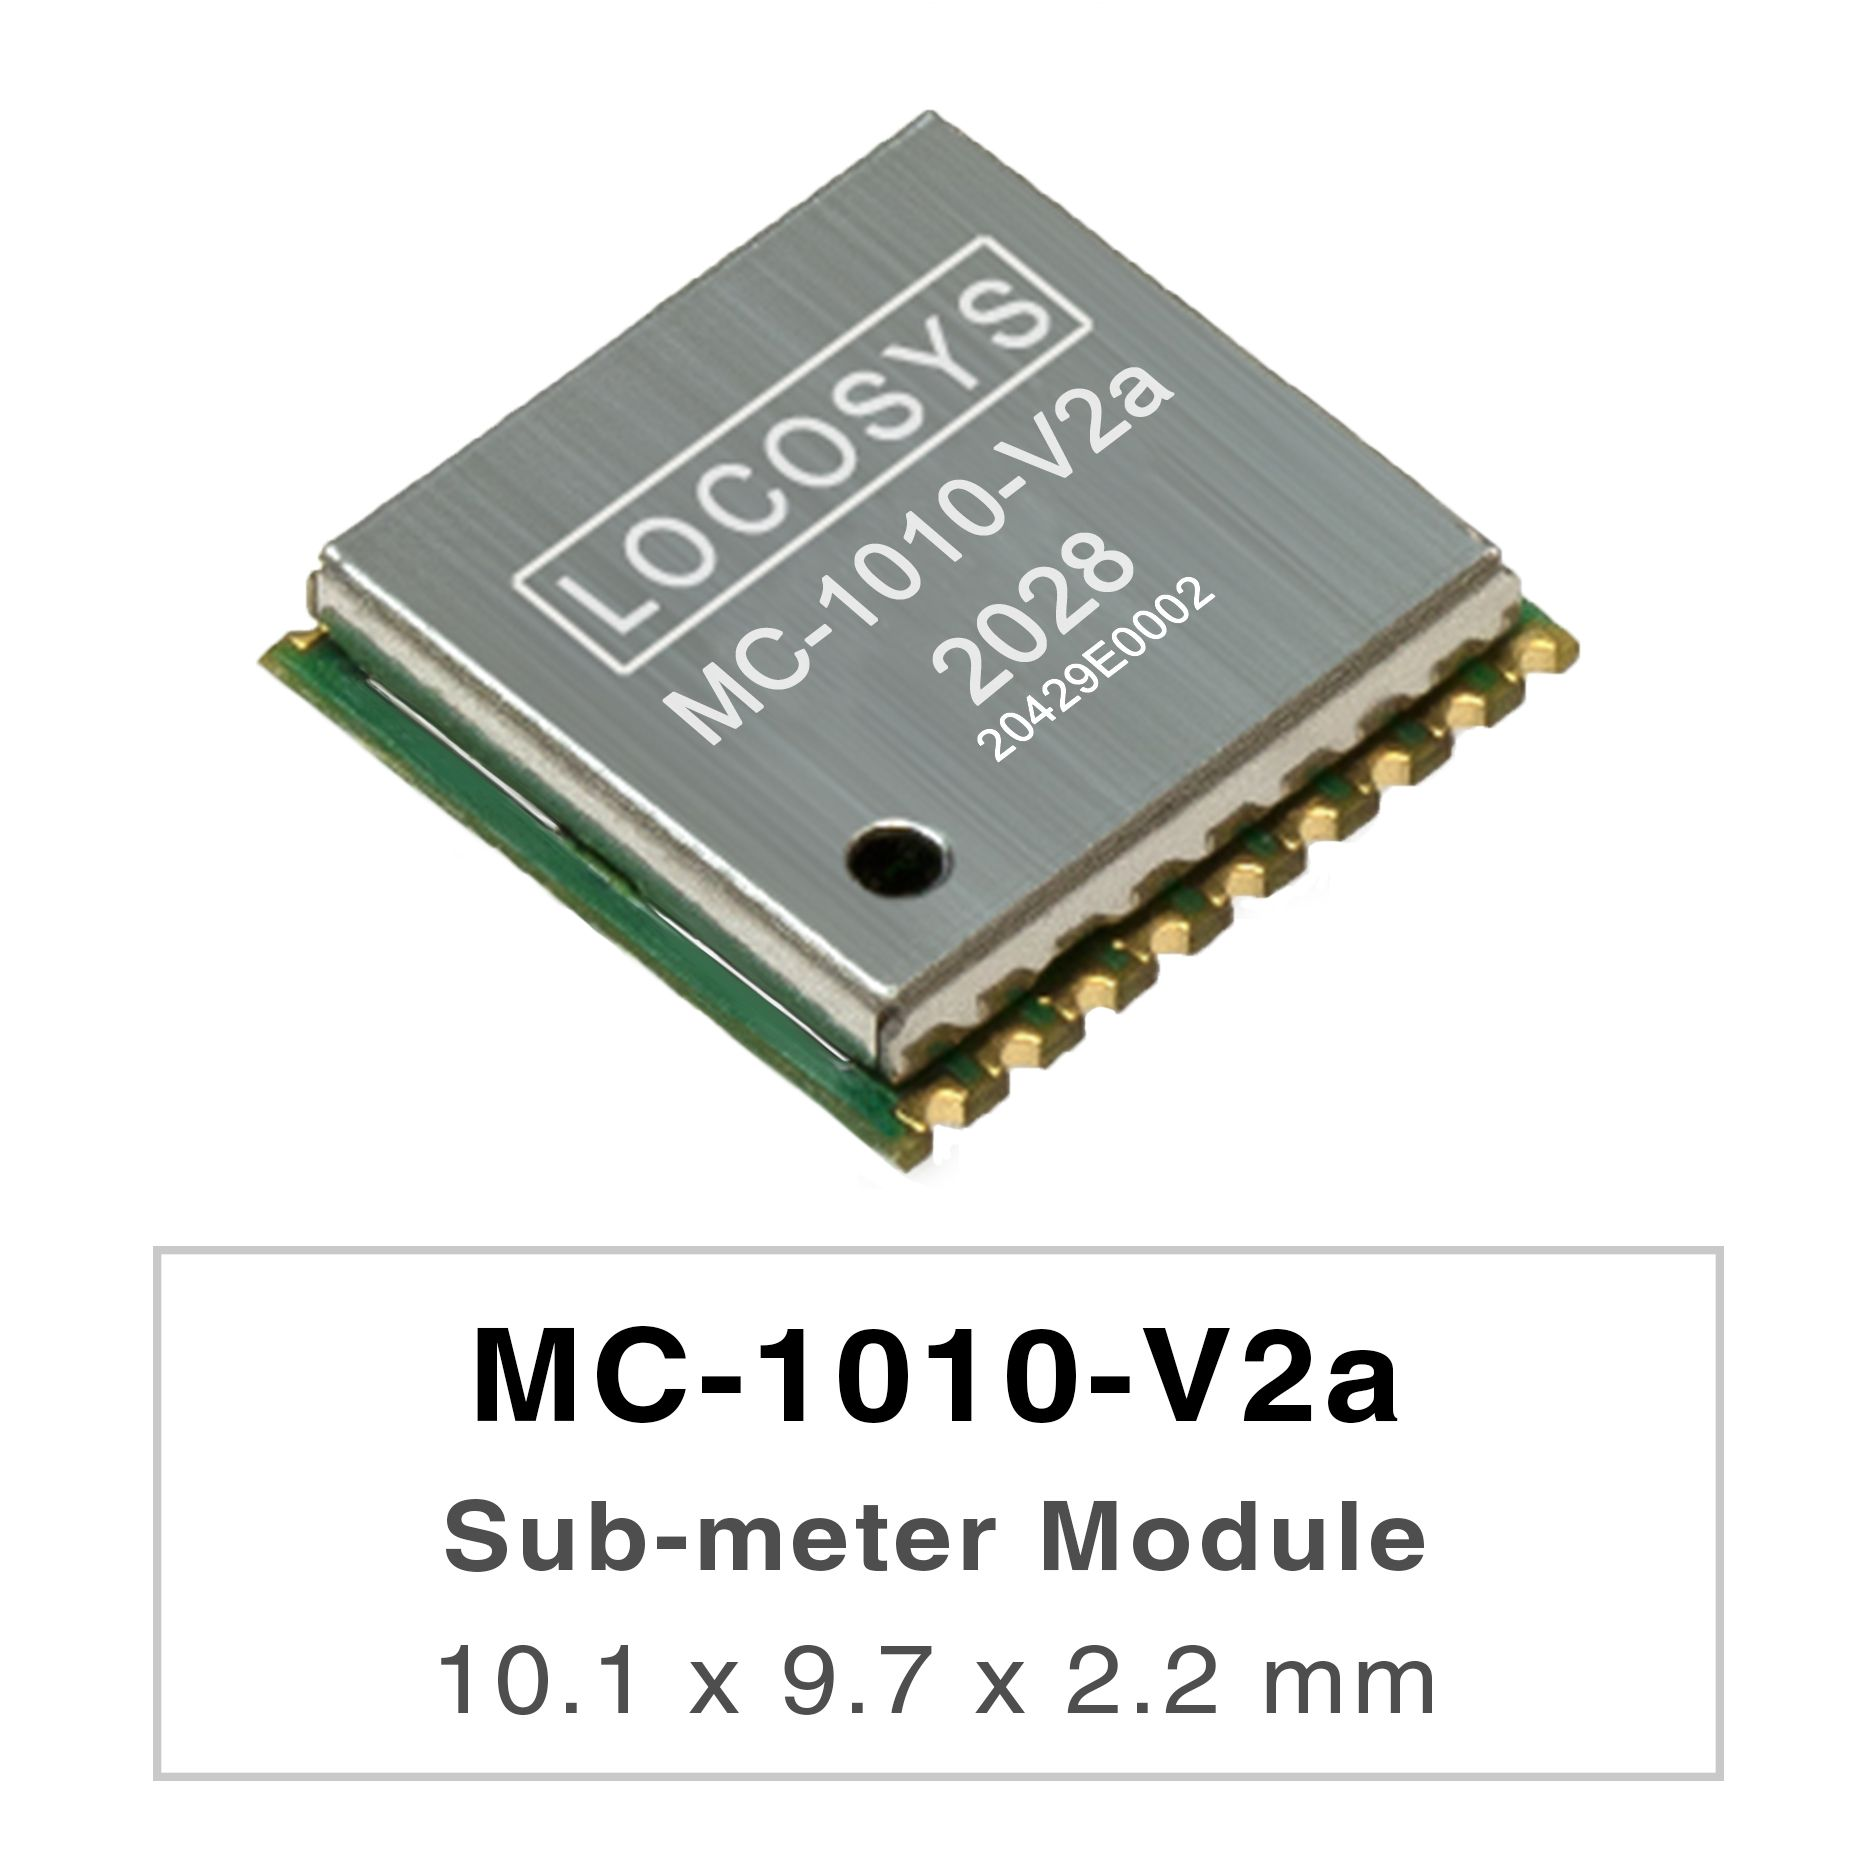 LOCOSYS MC-1010-Vxx series are high-performance dual-band GNSS positioning modules that are capable of tracking all global civil navigation systems. They adopt 12 nm process and integrate efficient power management architecture to perform low power and high sensitivity.